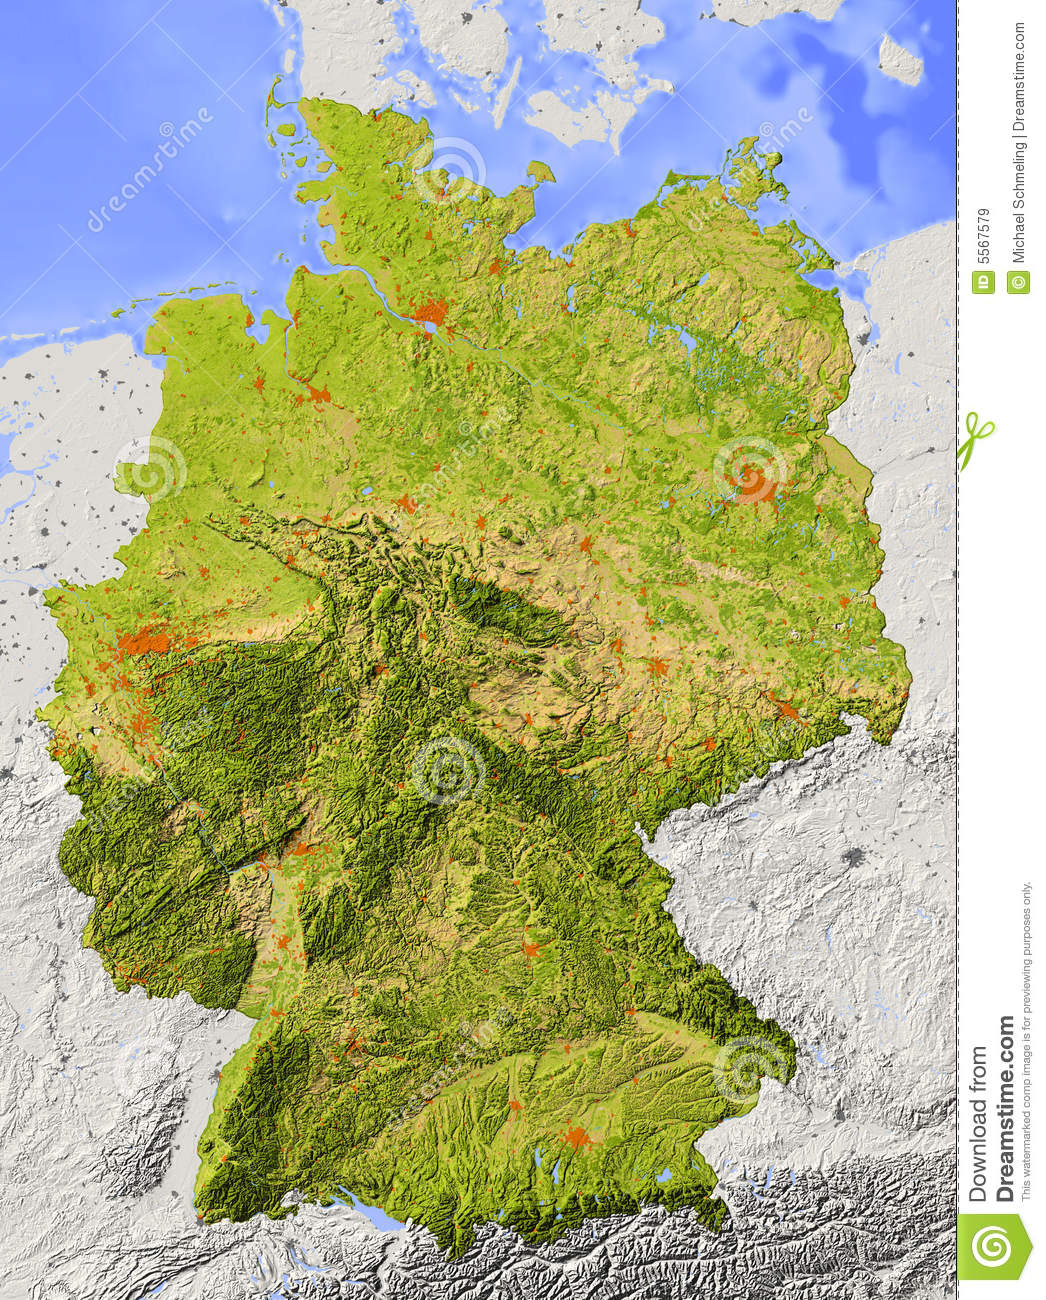 Topographical Map Of Germany.Germany Relief Map Stock Illustration Illustration Of Atlas 5567579